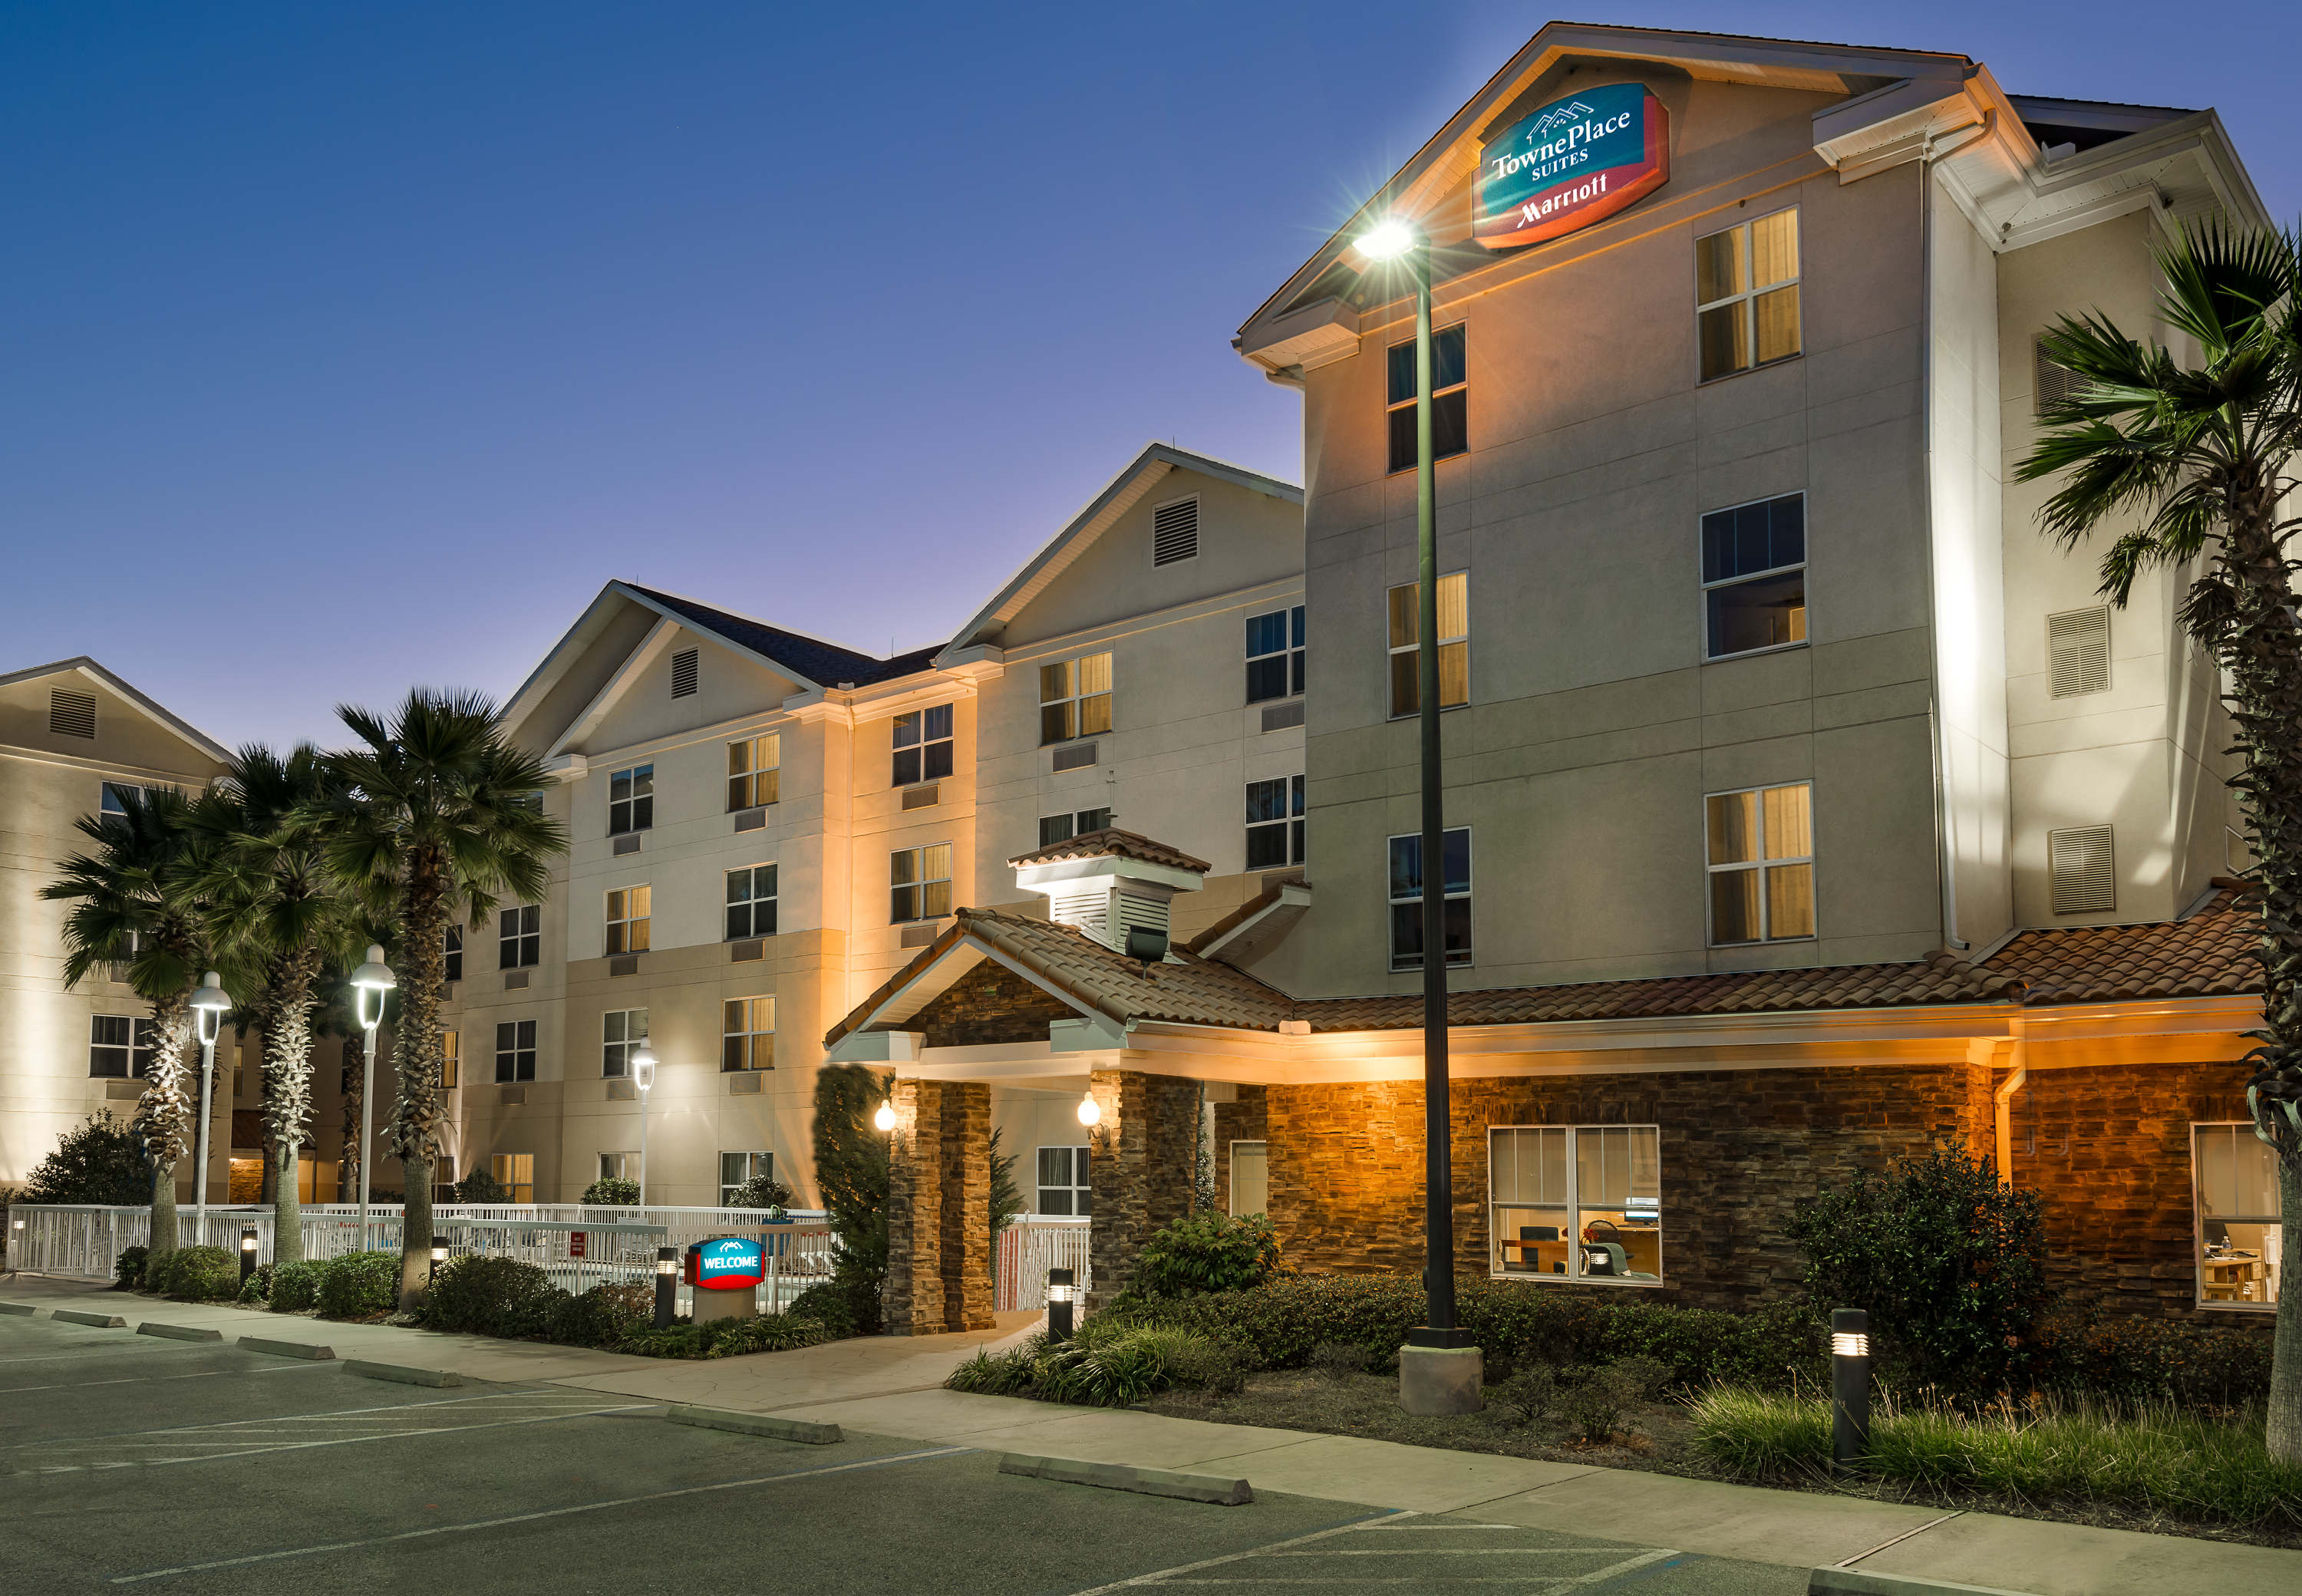 TownePlace Suites by Marriott Pensacola image 1